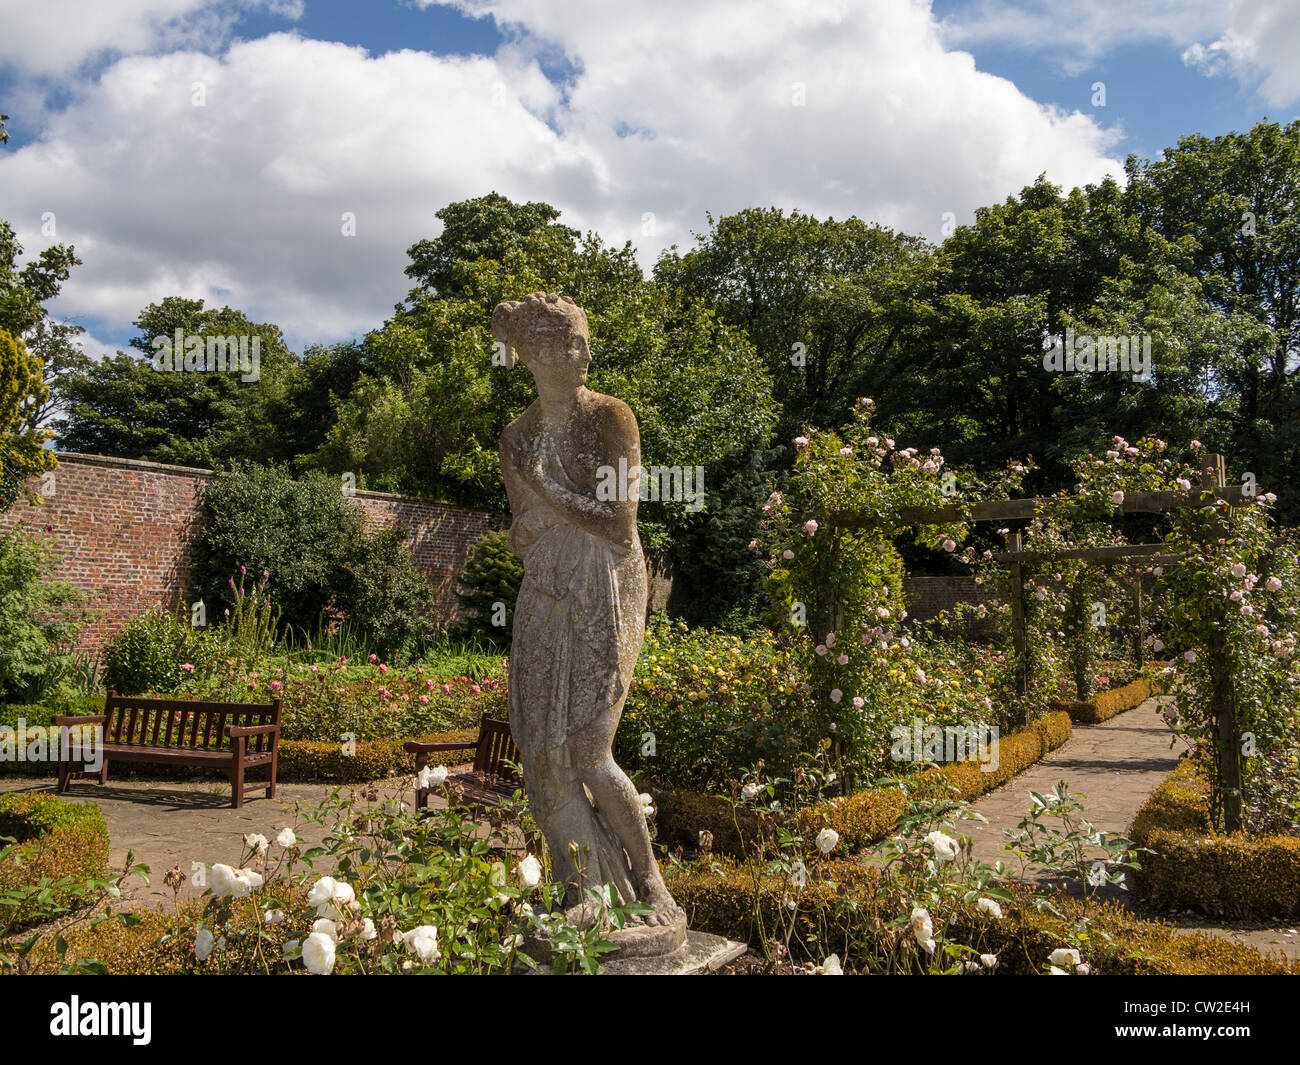 Yorkshire Rose Stock Photos & Yorkshire Rose Stock Images - Alamy